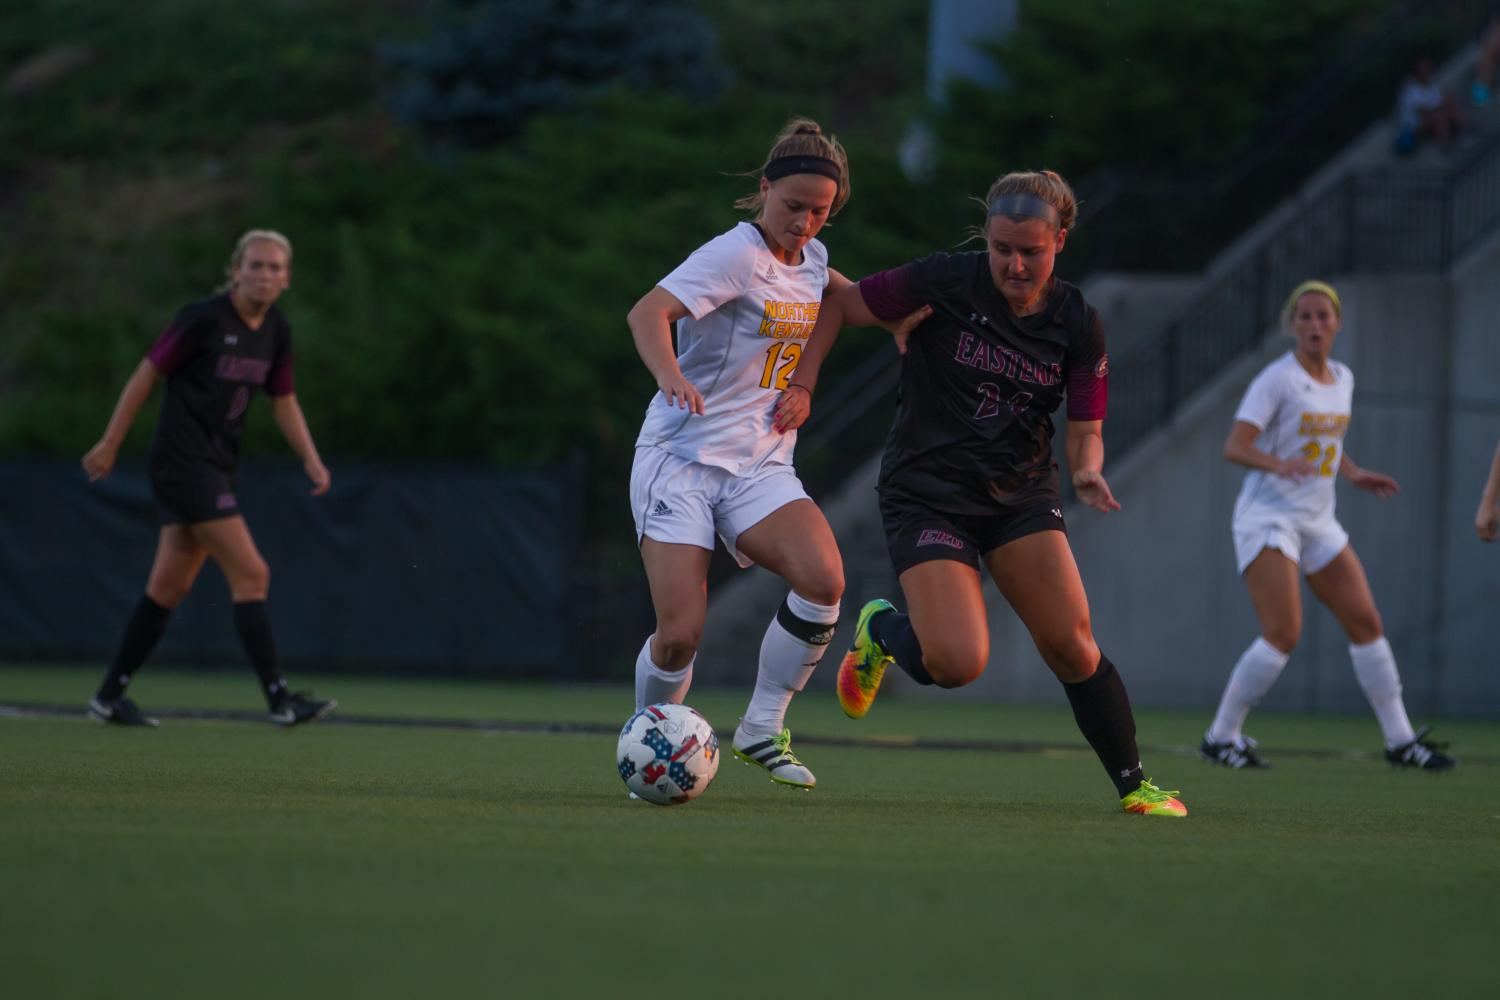 Jessica Frey scored the game winning goal against EKU Friday night.